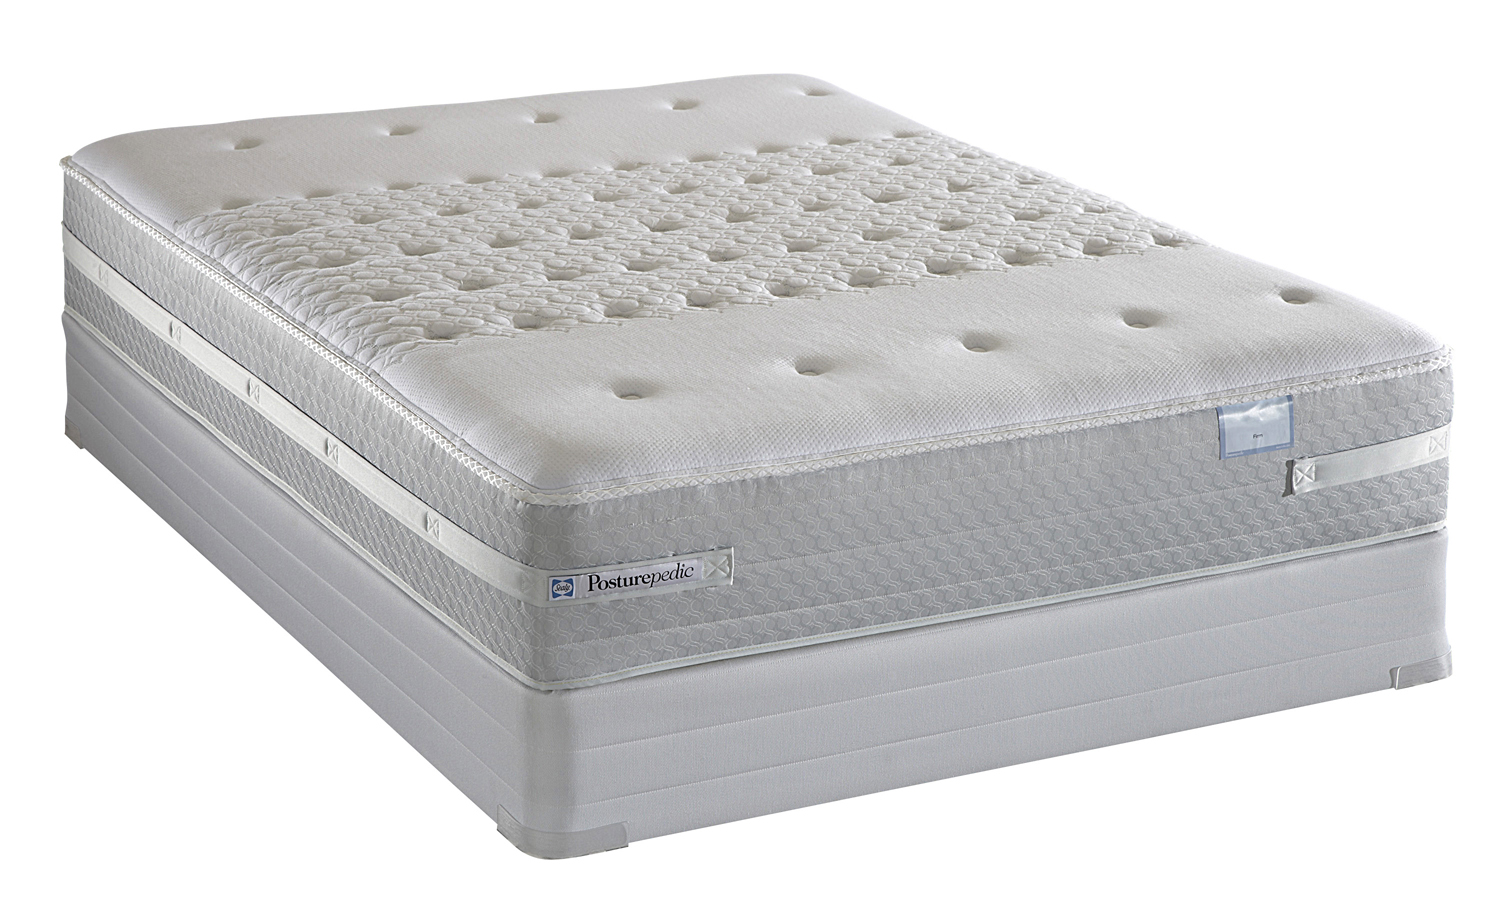 Image Result For Sealy Posturepedic Plush Reviews